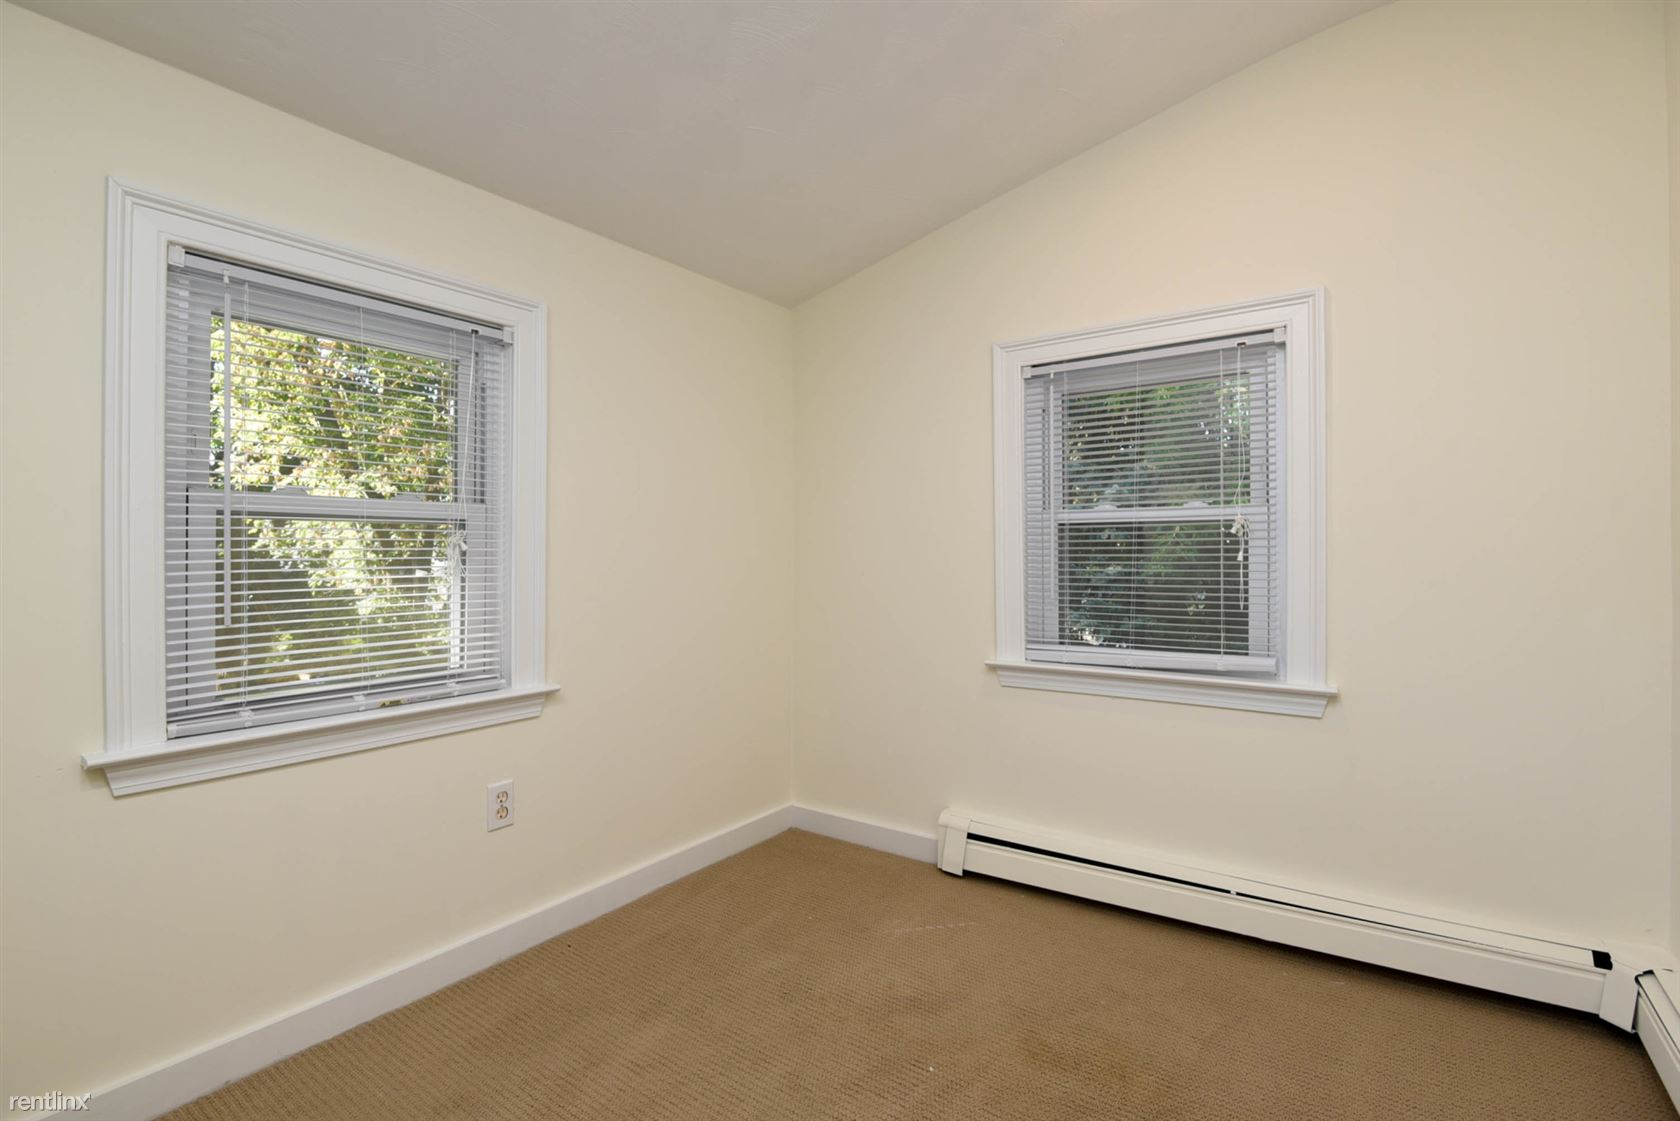 59 Goodenough St Apt 2